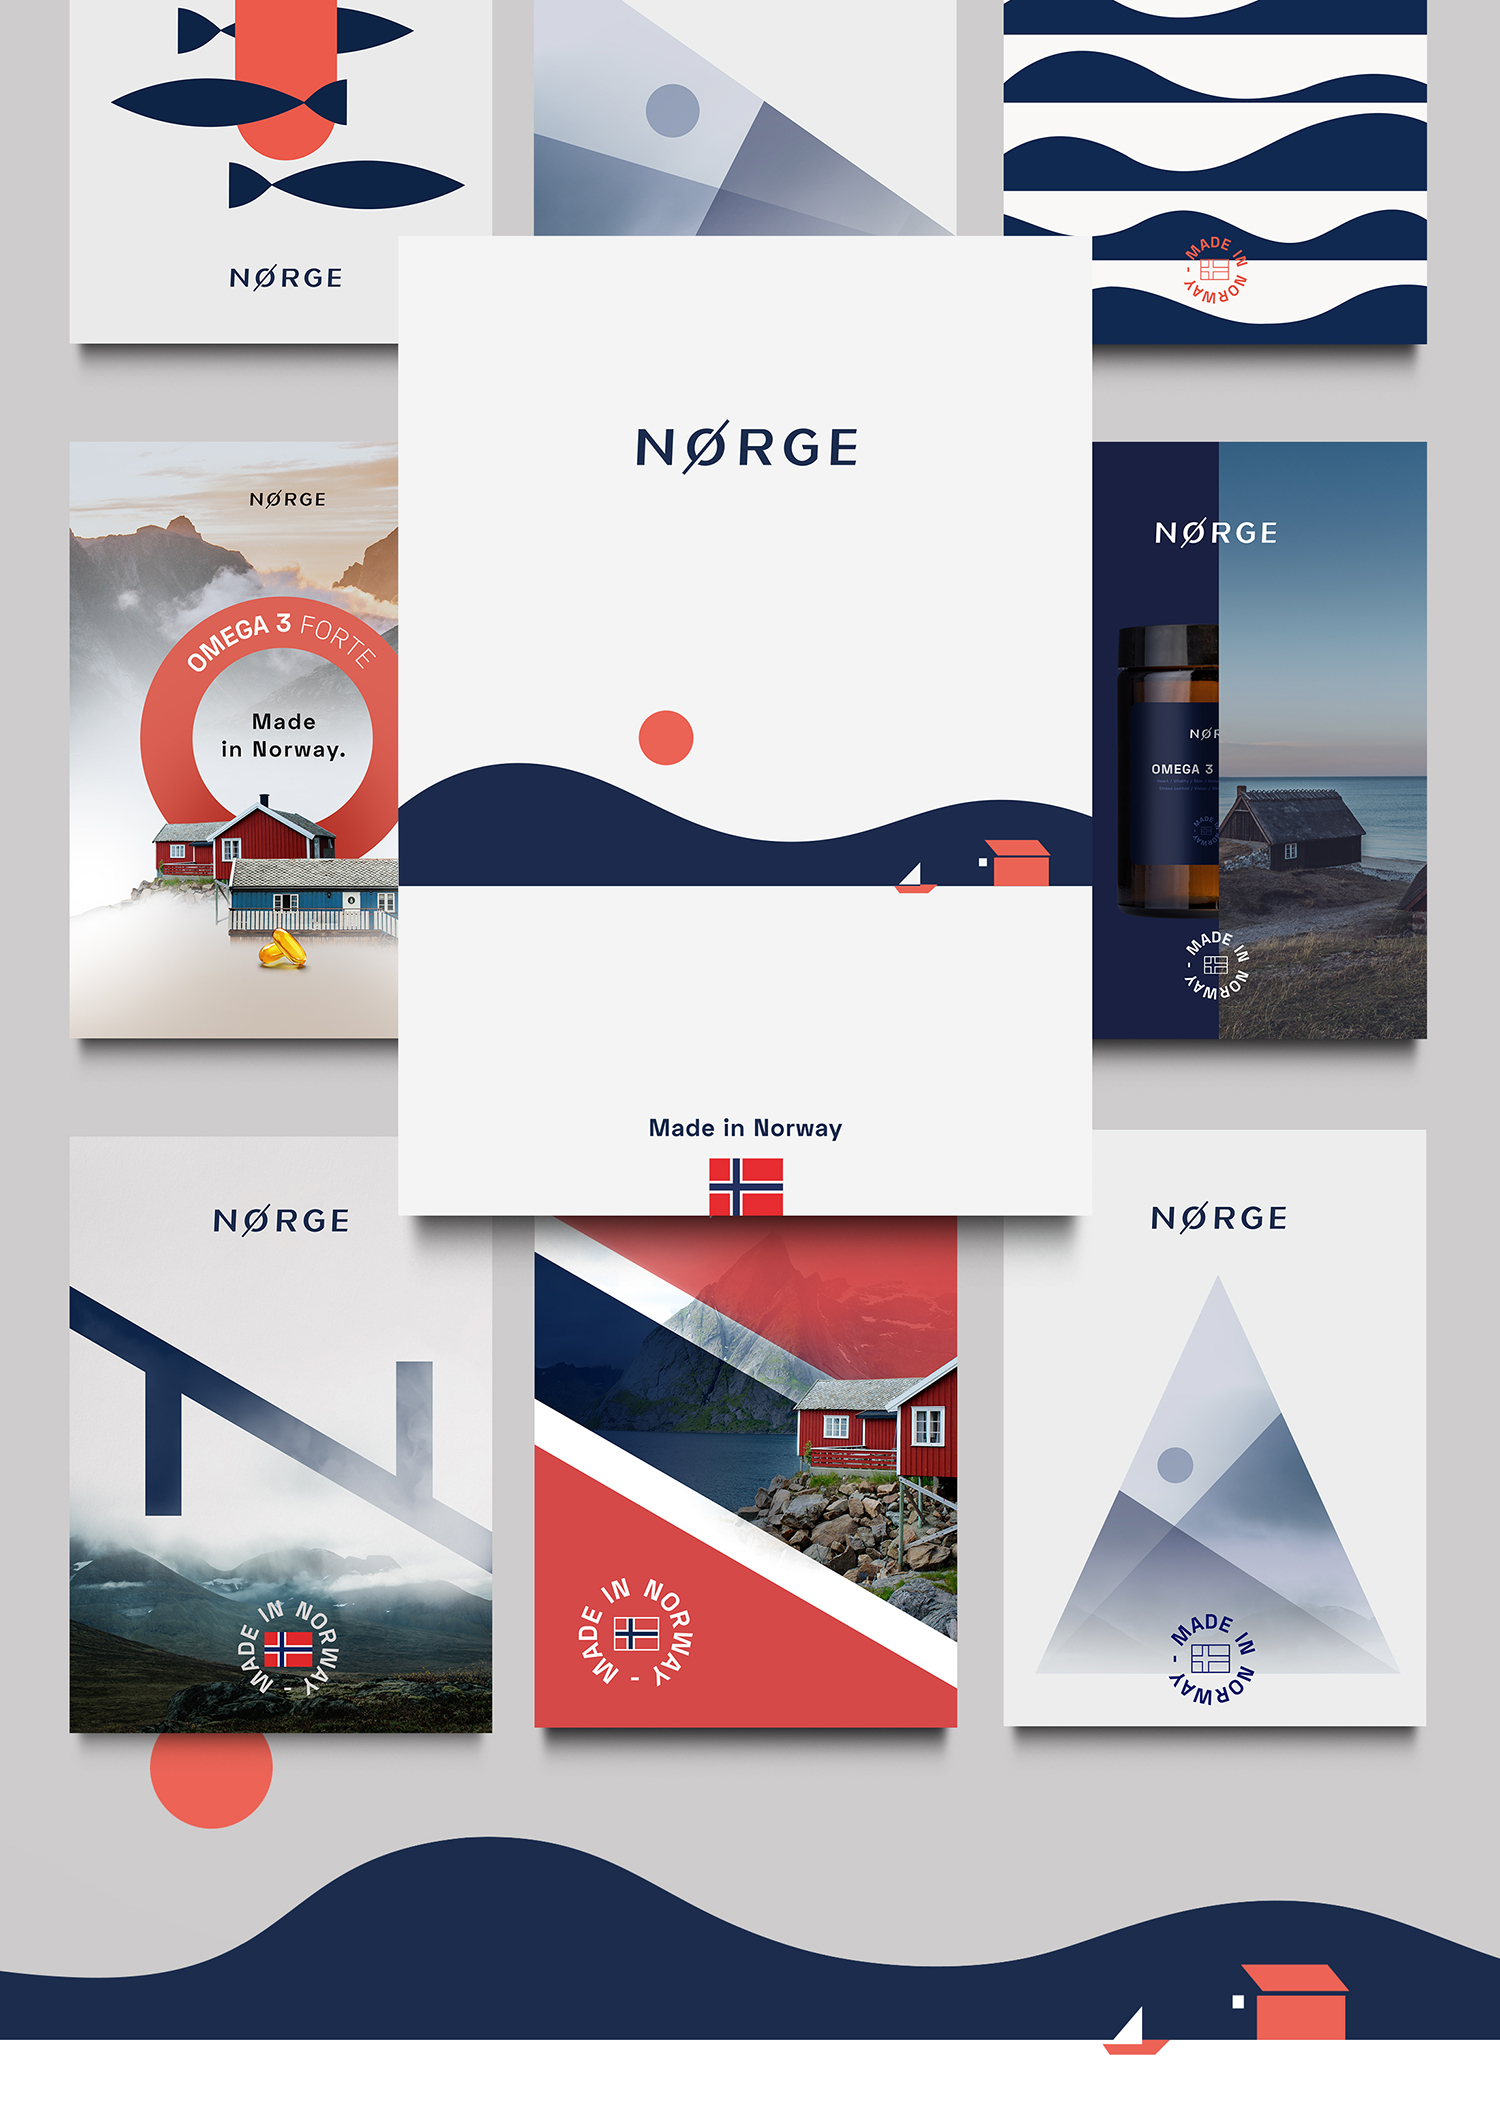 norge_9